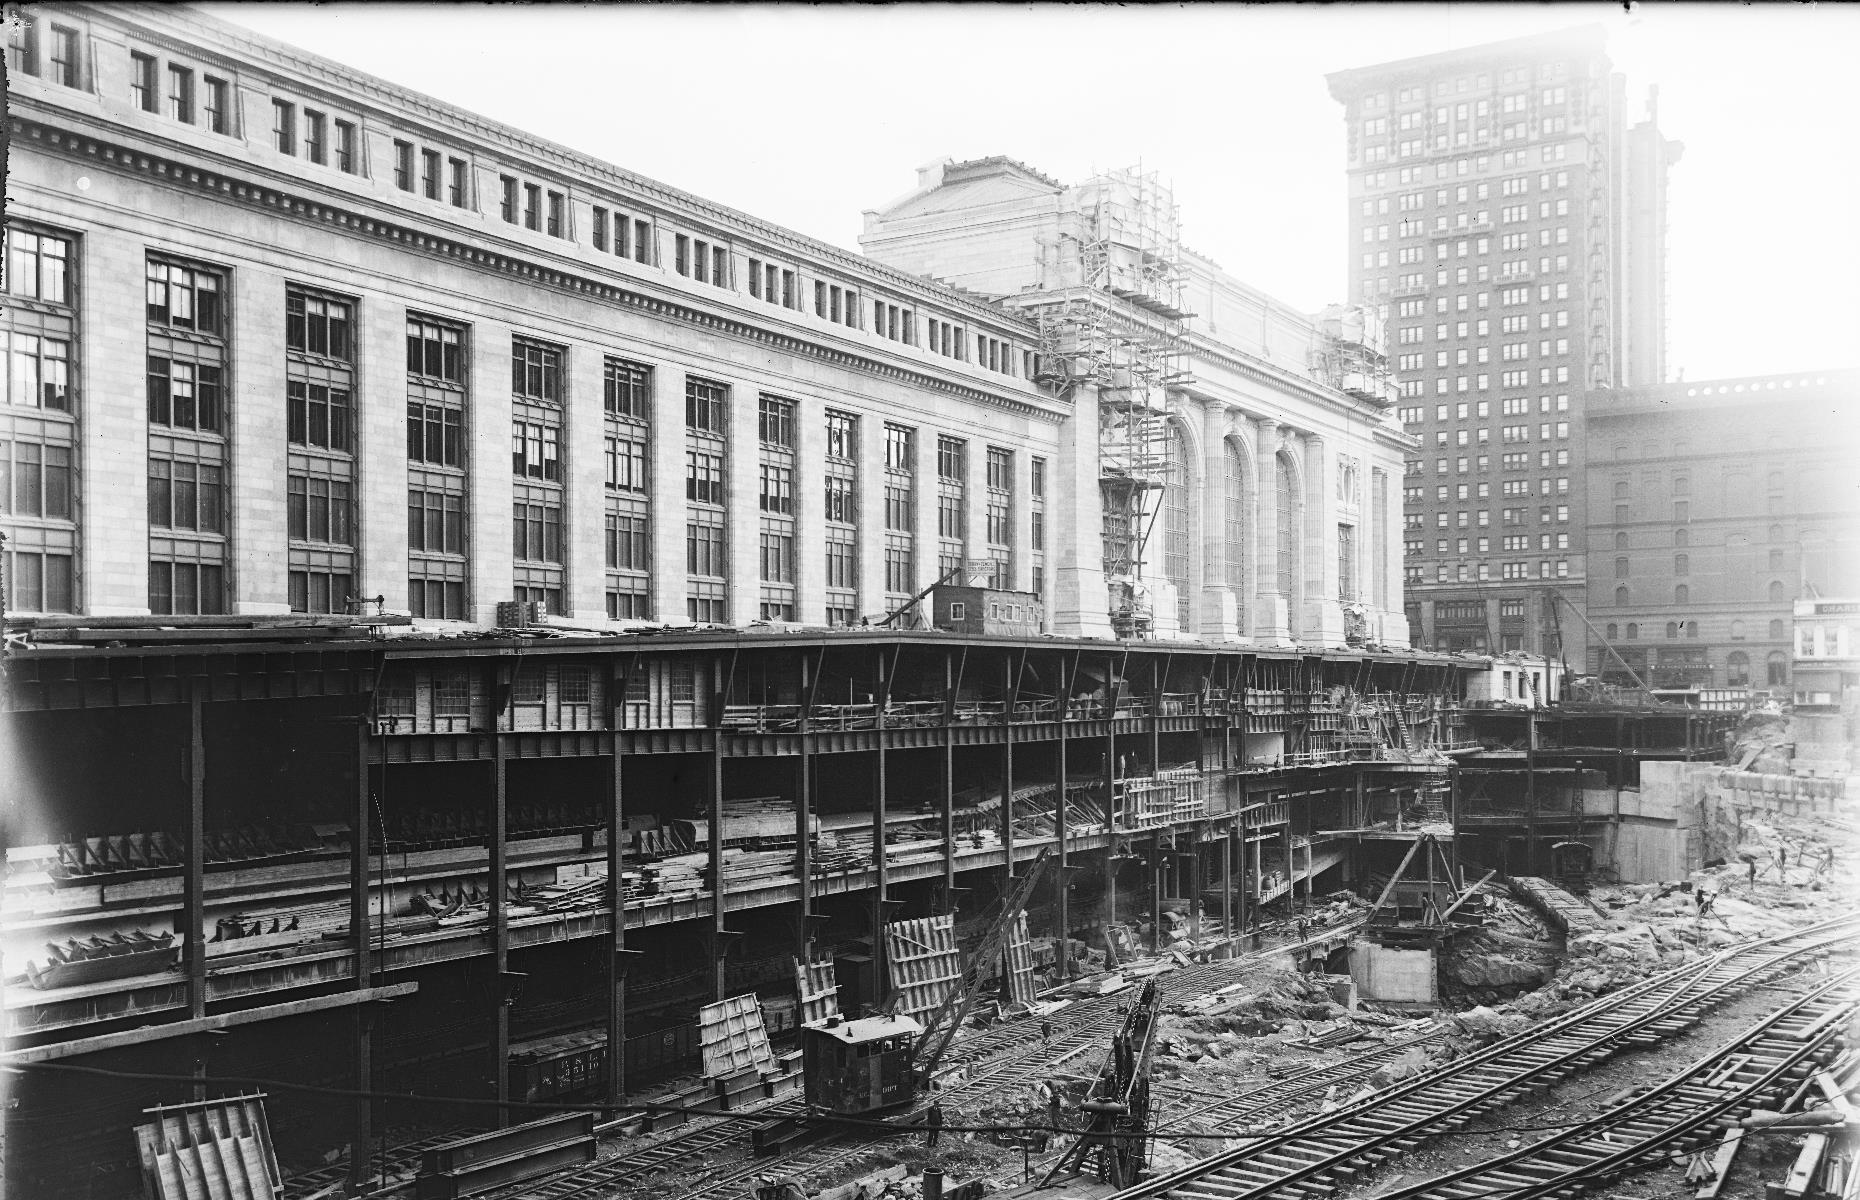 Slide 23 of 41: Construction of the Grand Central Terminal that stands today got underway in 1903 and remains an enduring attraction in New York City.  A replacement for an earlier station, it's celebrated for its Beaux Arts-style architecture, and boasts a façade complete with intricate sculptures, columns and an ornate clock face. It's pictured here, in the throes of construction, around 1912 – it would be finished and opened to the public in 1913.